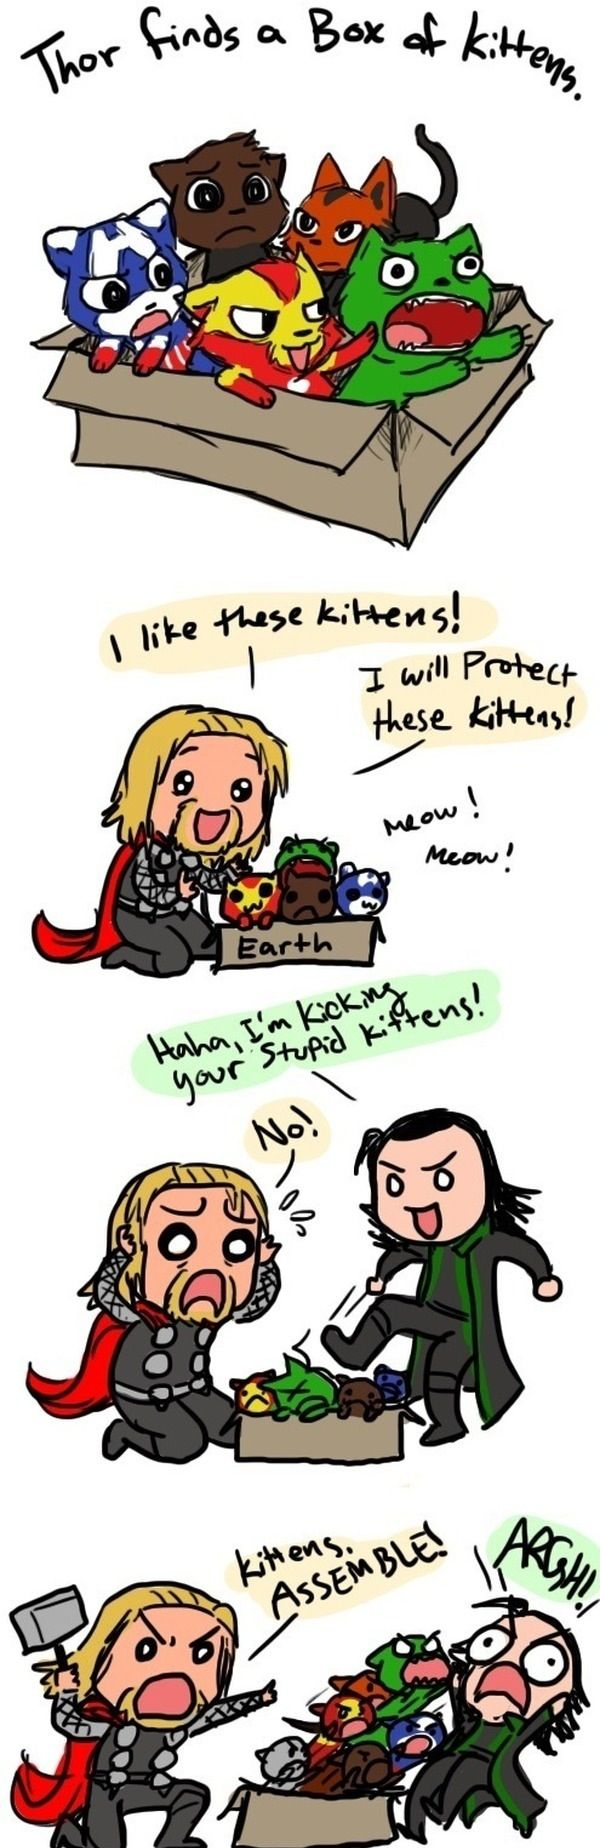 Advengers Thor and loki